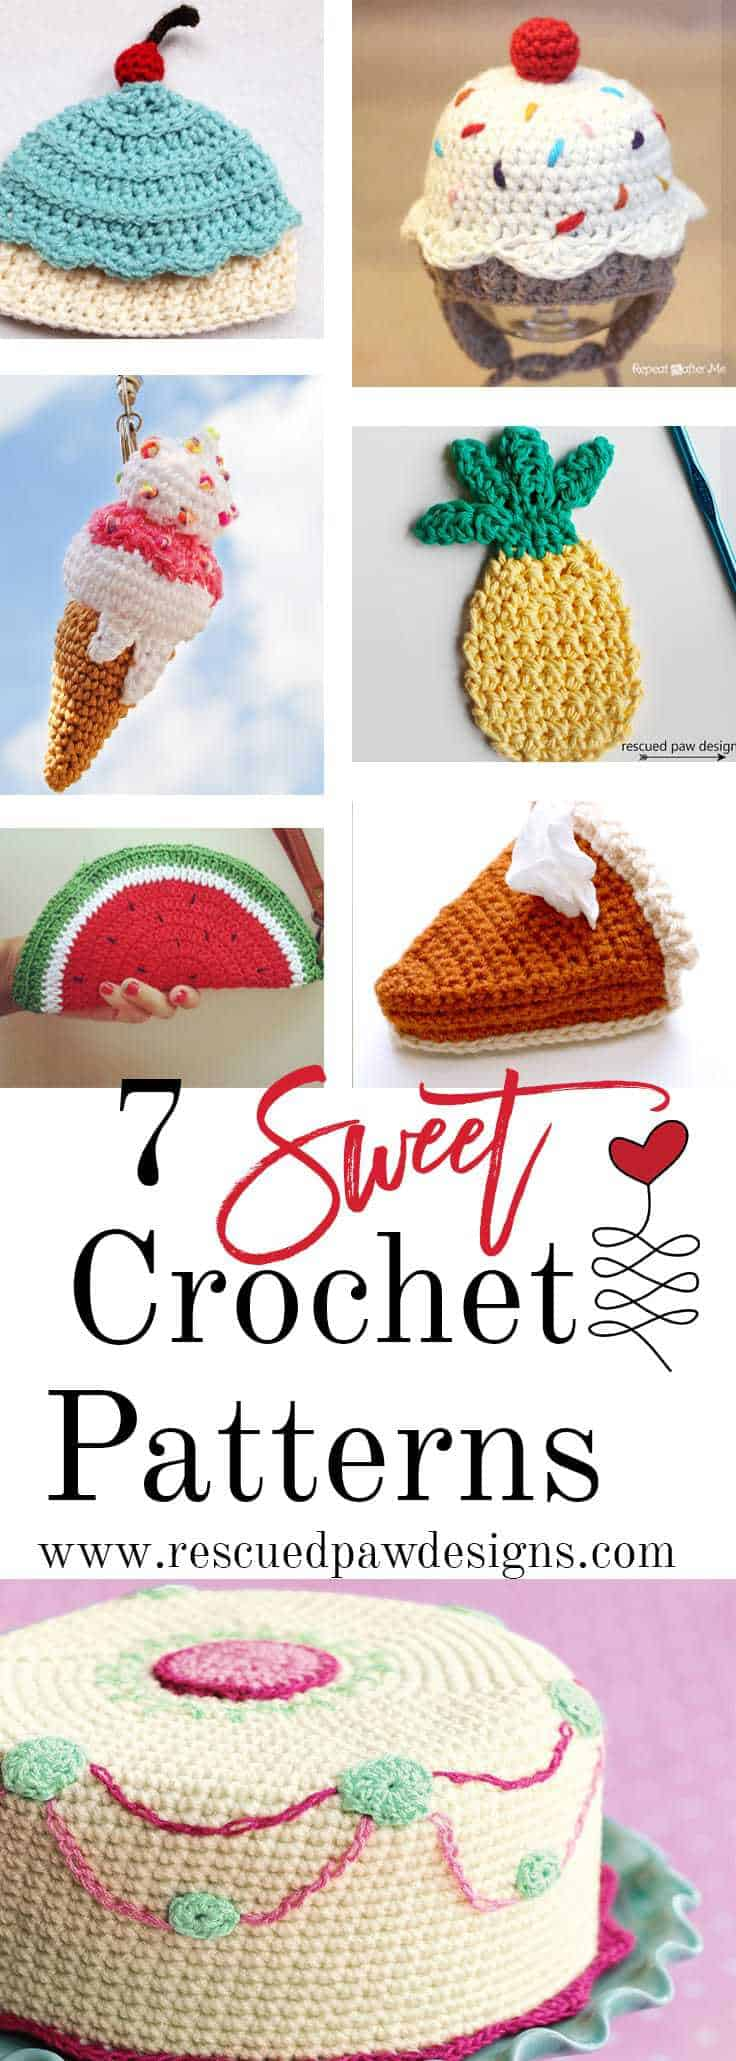 Crochet Food Patterns